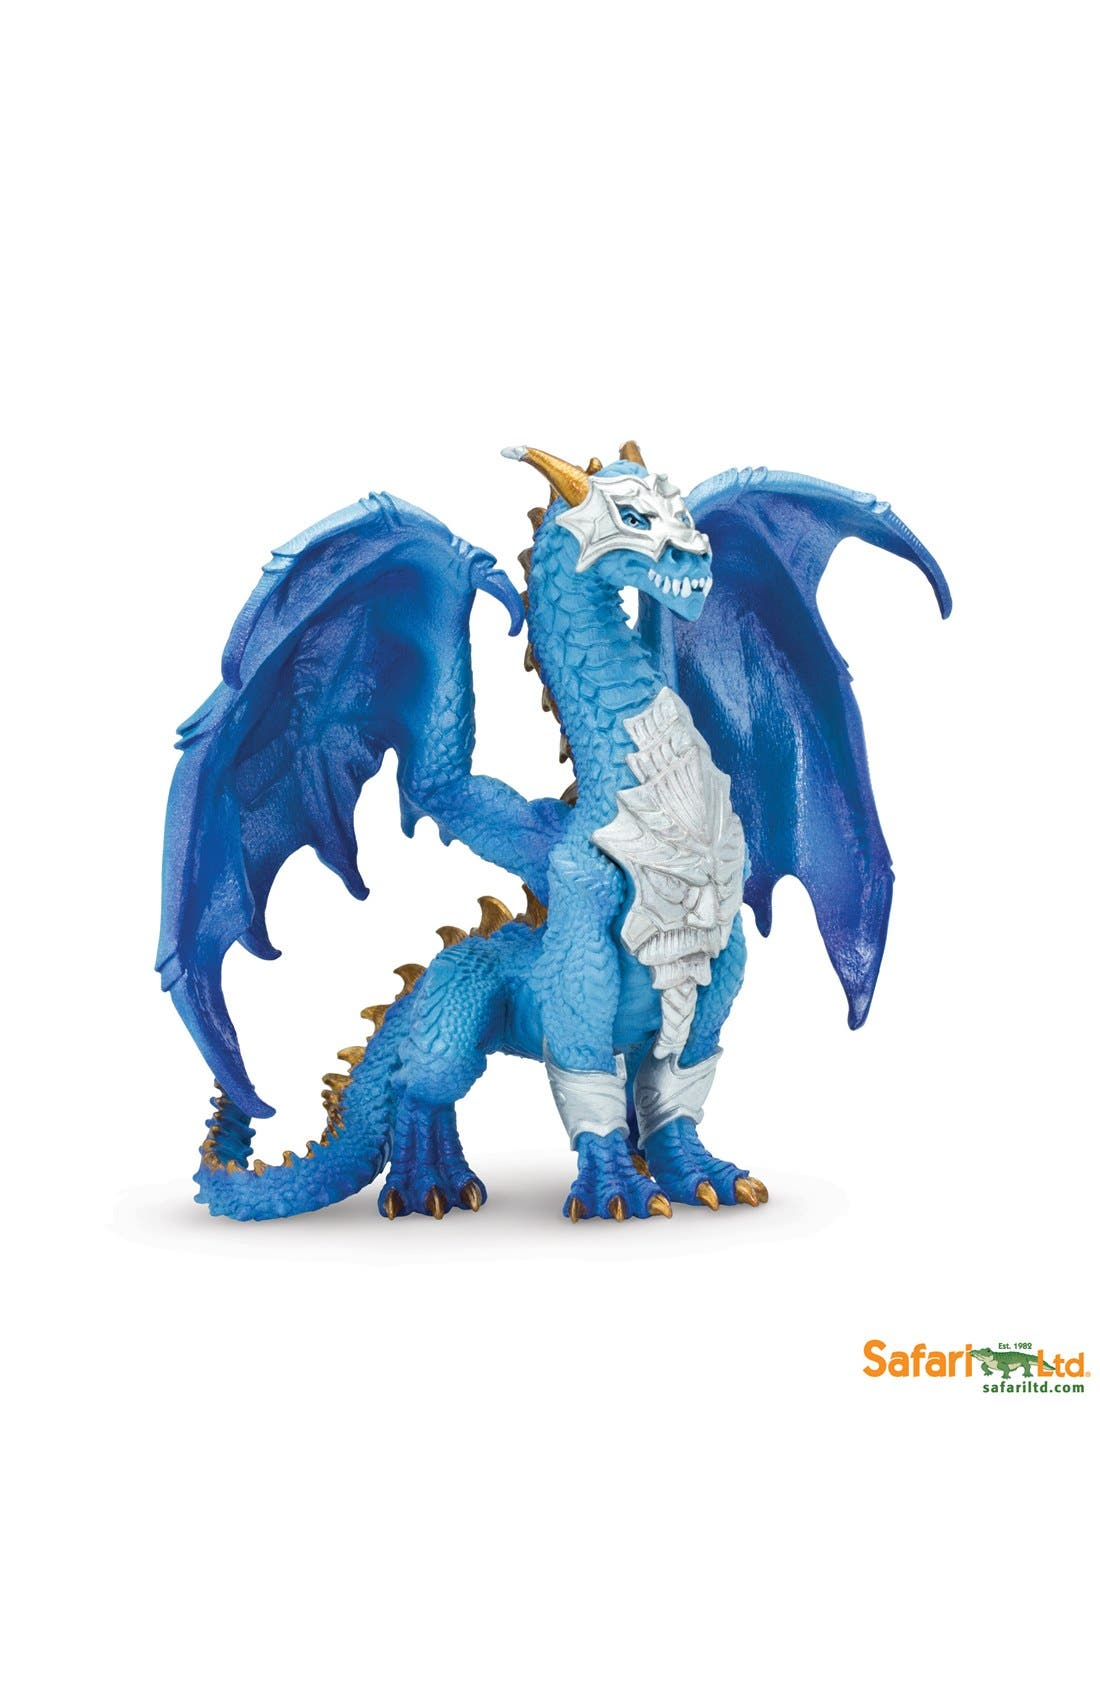 Safari Ltd. Guardian Dragon Figurine